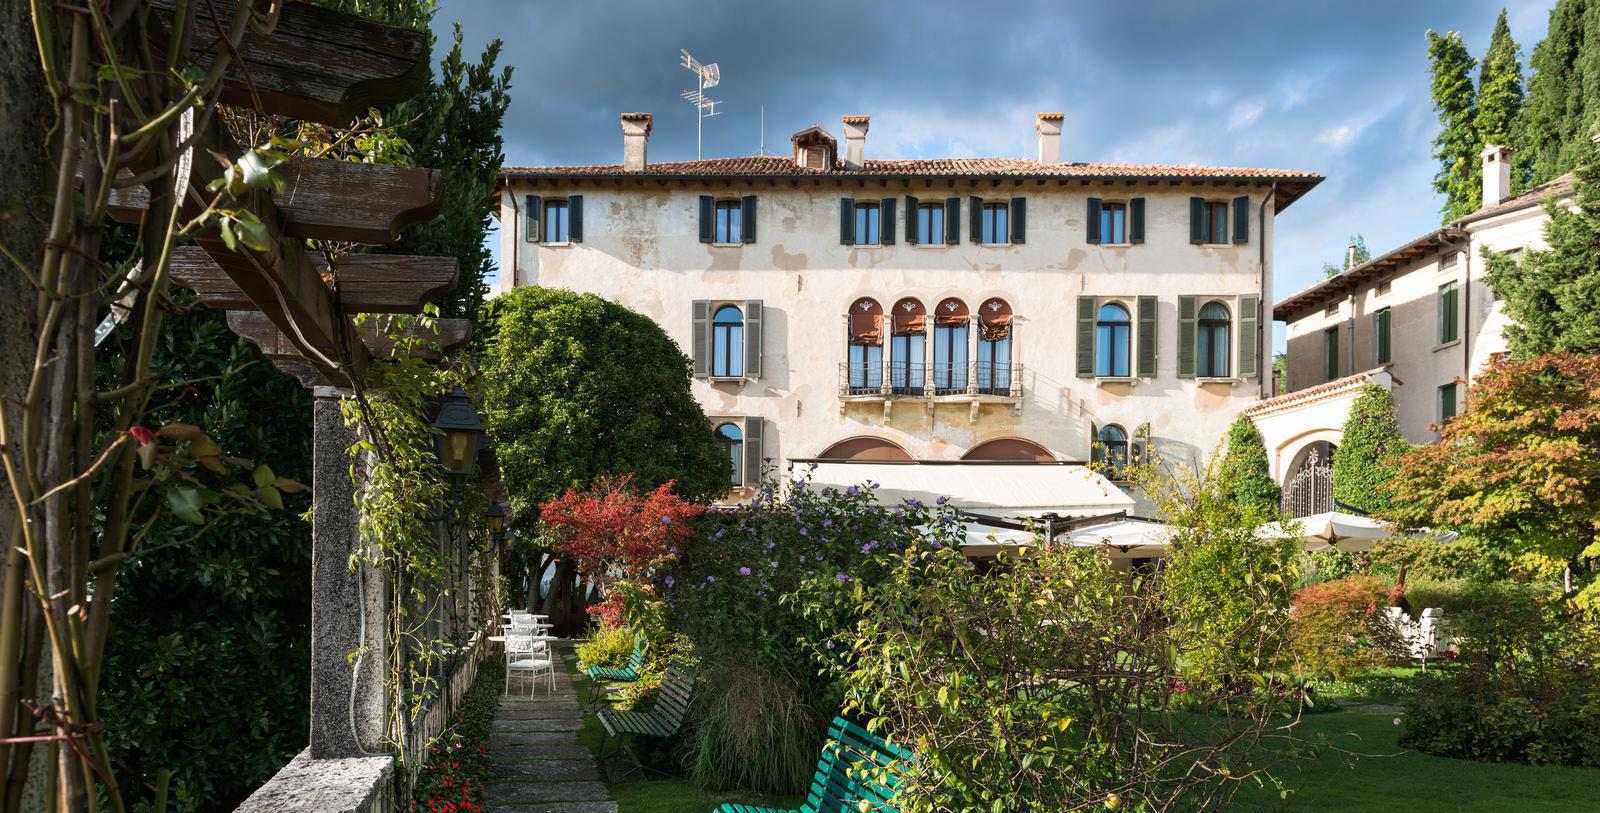 Image of Garden Hotel Villa Cipriani, 1889, Member of Historic Hotels Worldwide, in Asolo, Italy, Special Offers, Discounted Rates, Families, Romantic Escape, Honeymoons, Anniversaries, Reunions